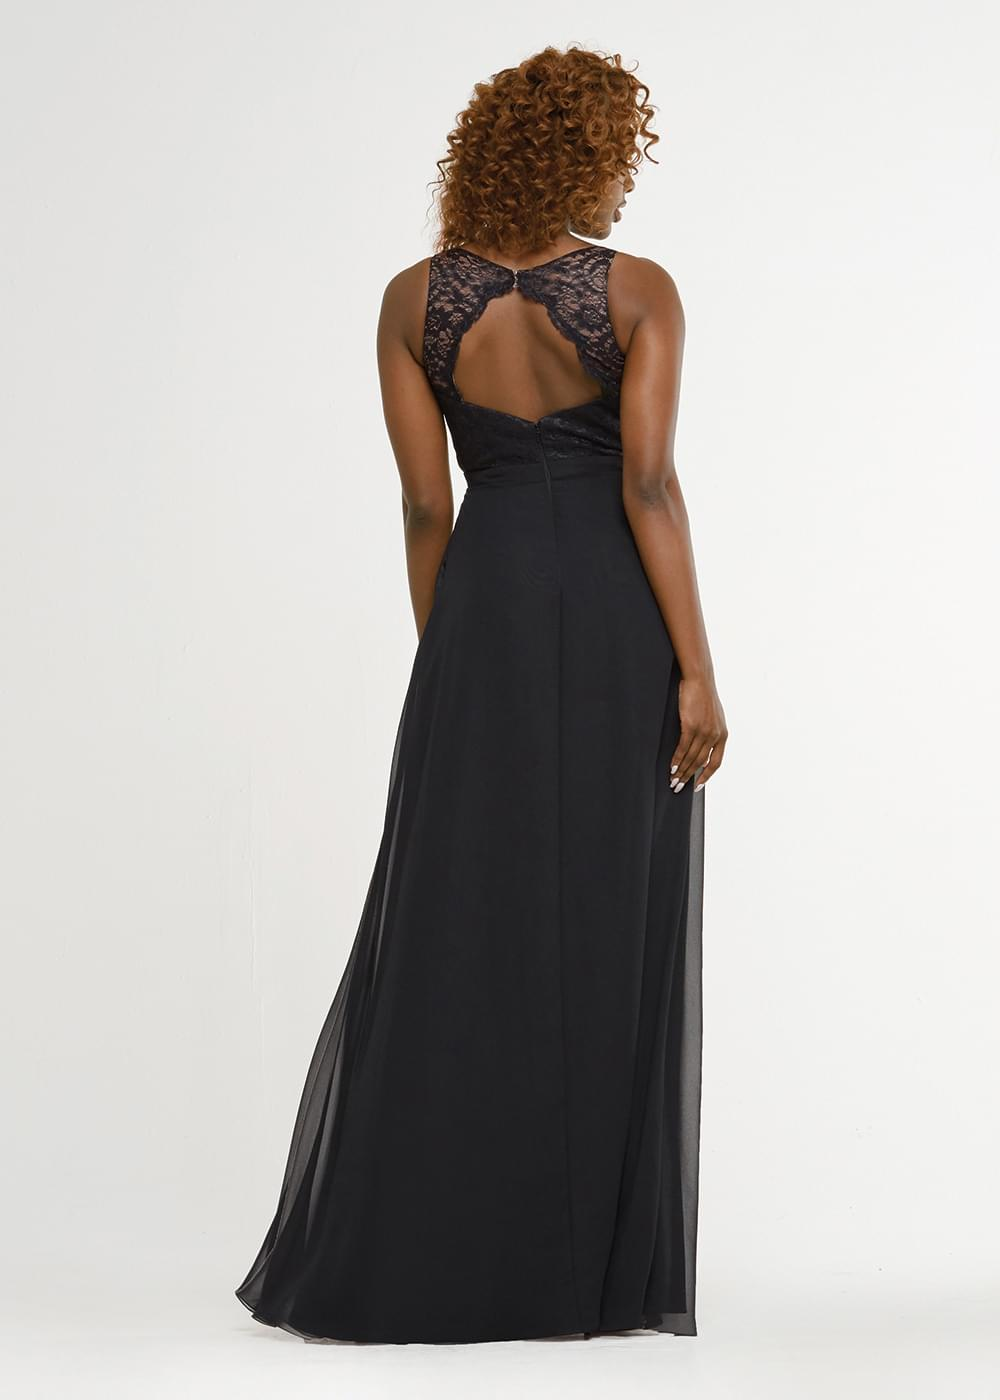 80166 Dresses with Straps By Ashdon